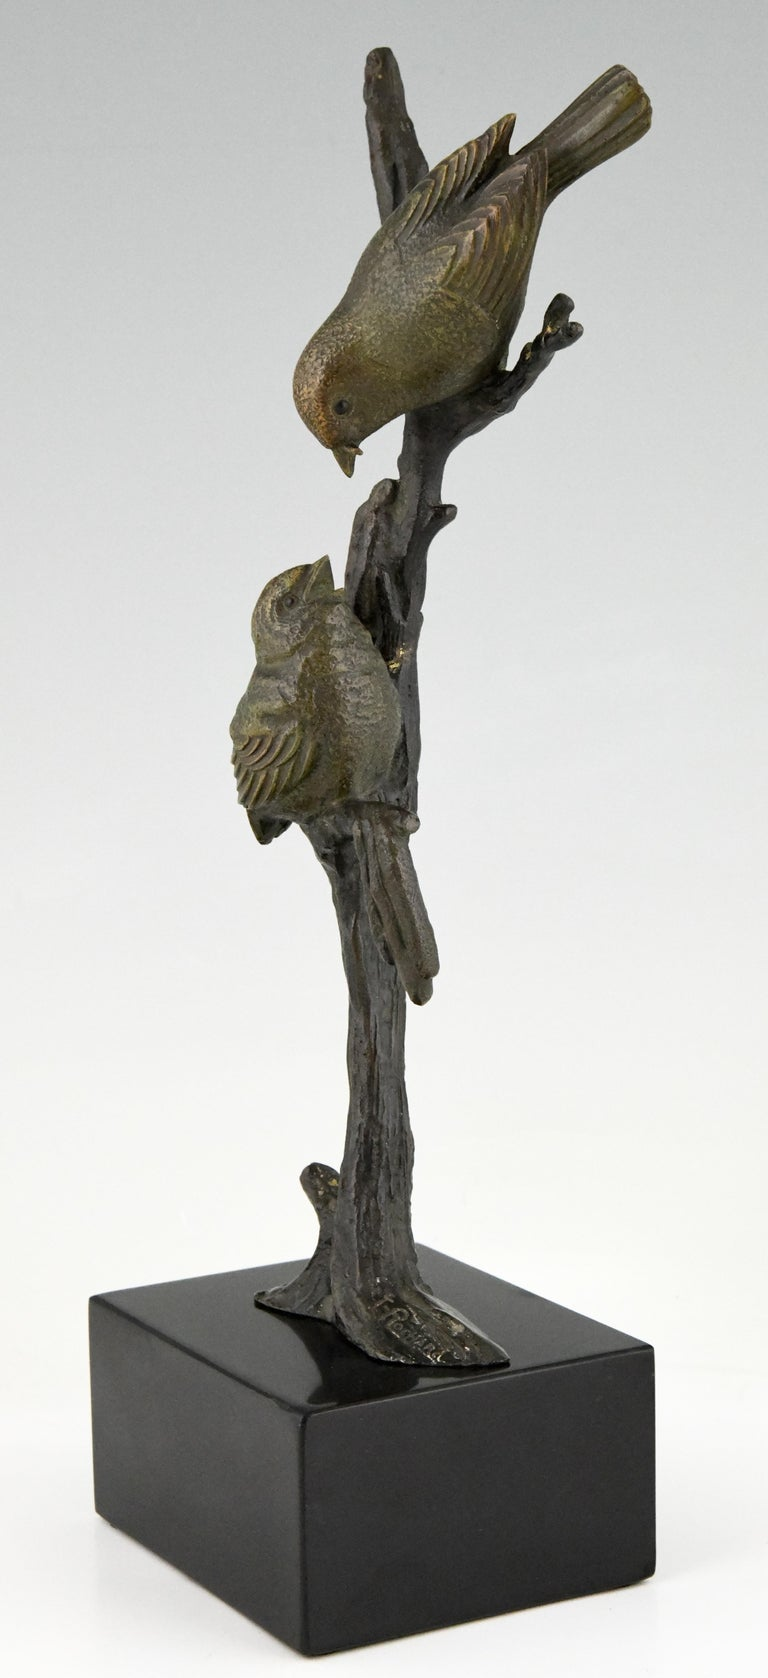 French Art Deco Bronze Sculpture Two Birds on an Branch Irenee Rochard, France, 1930 For Sale